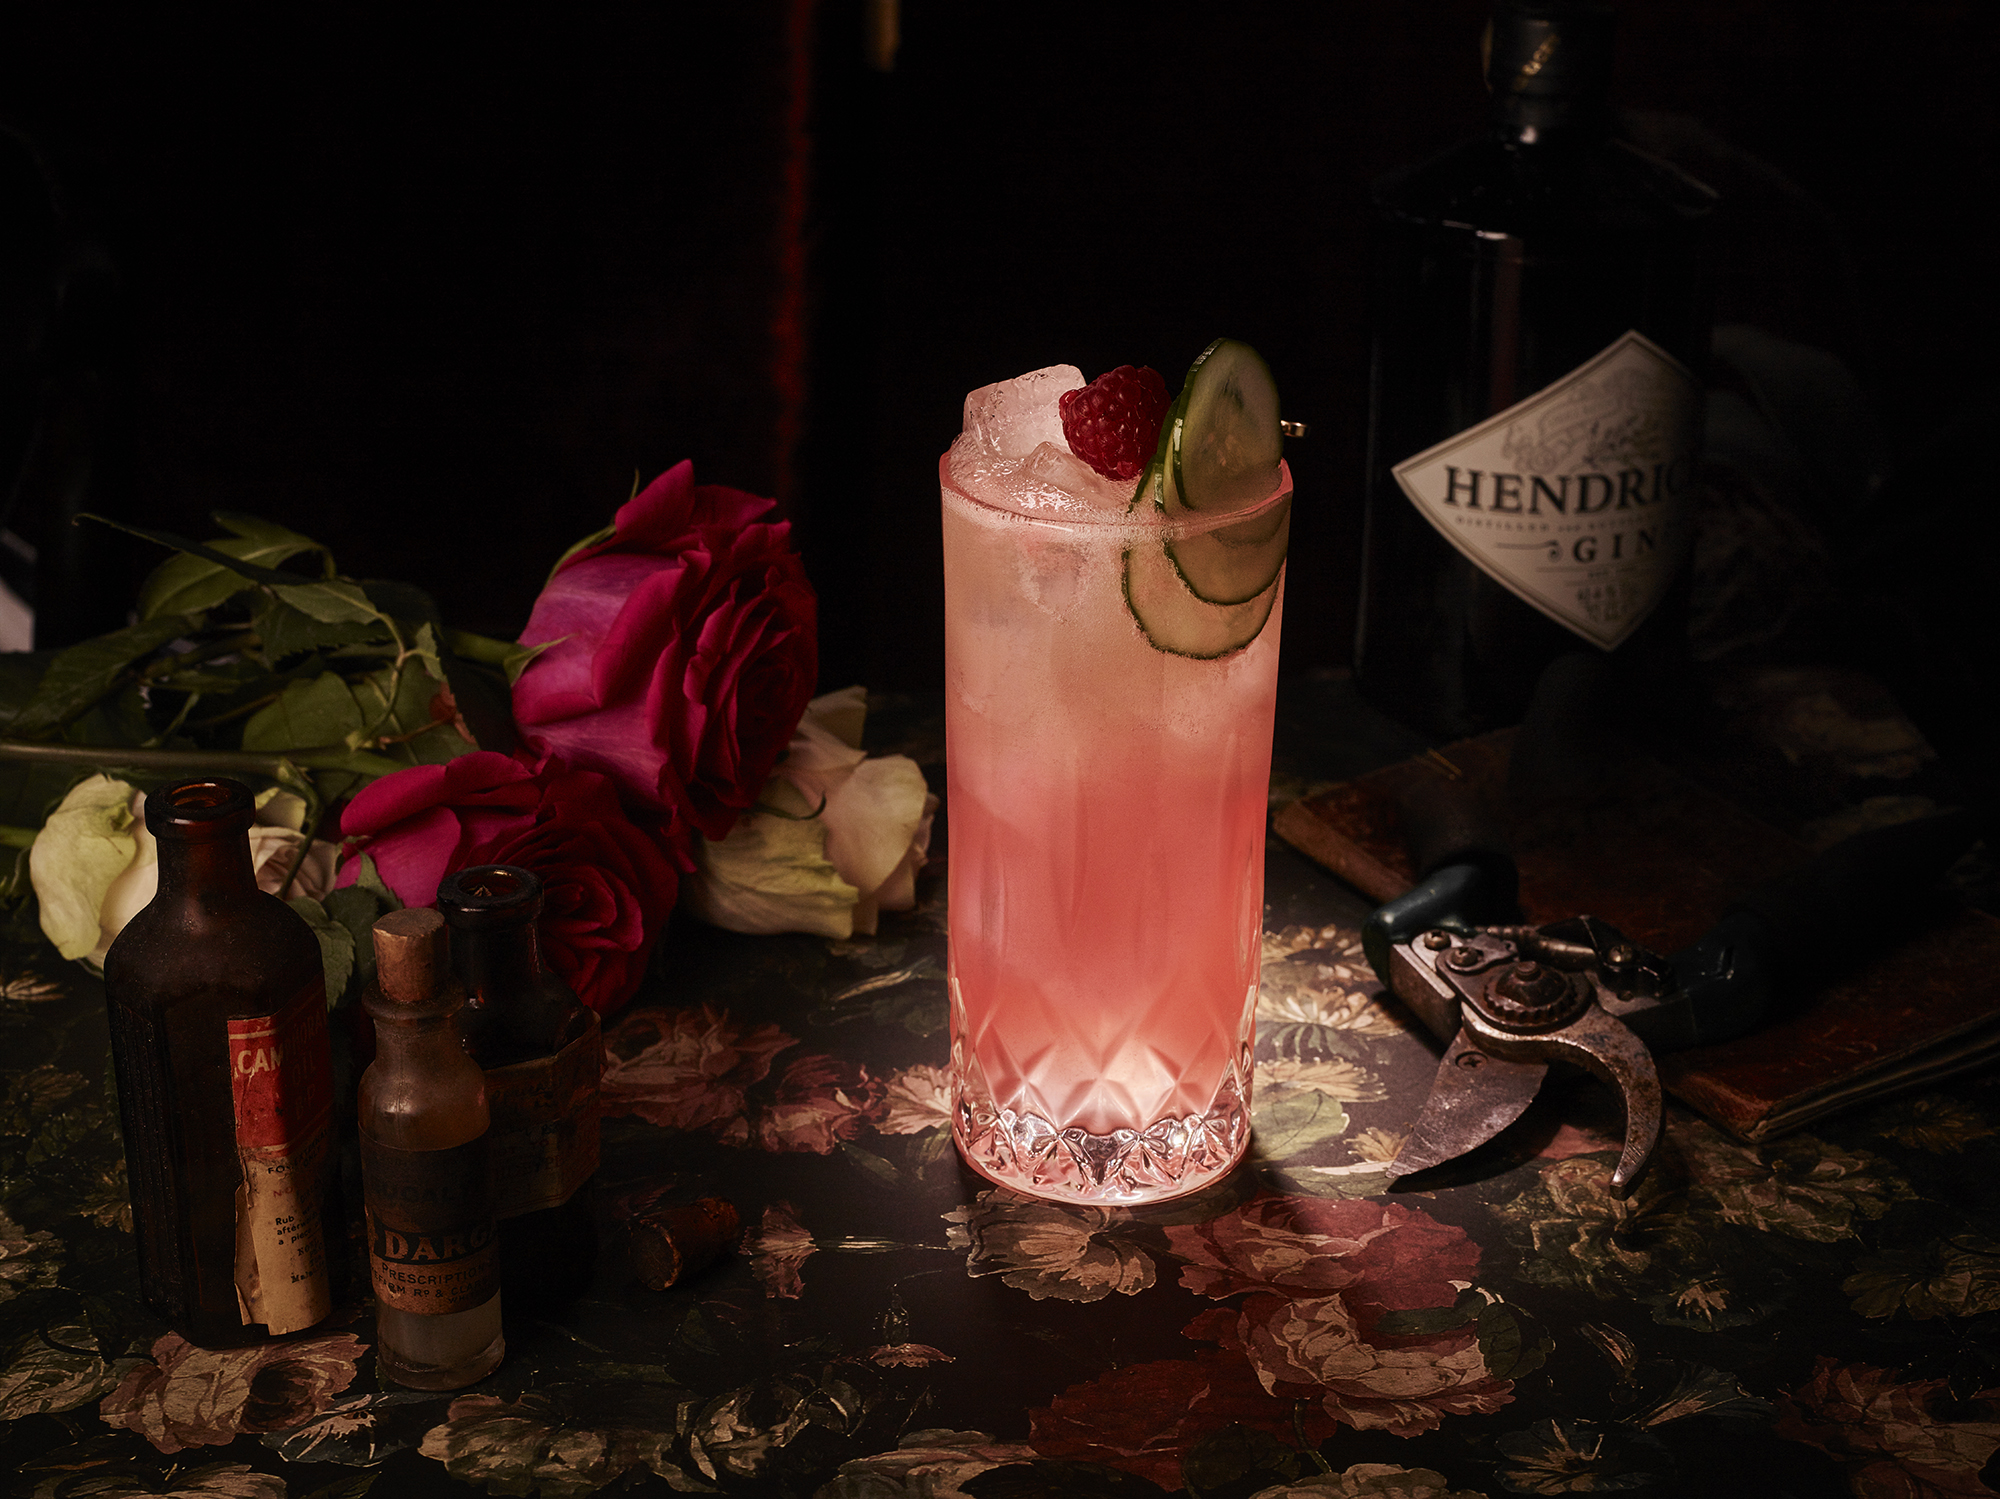 Hendrick's Gin Cupid's Cocktail: Elixirs of Love and Lust {PRESS RELEASE}